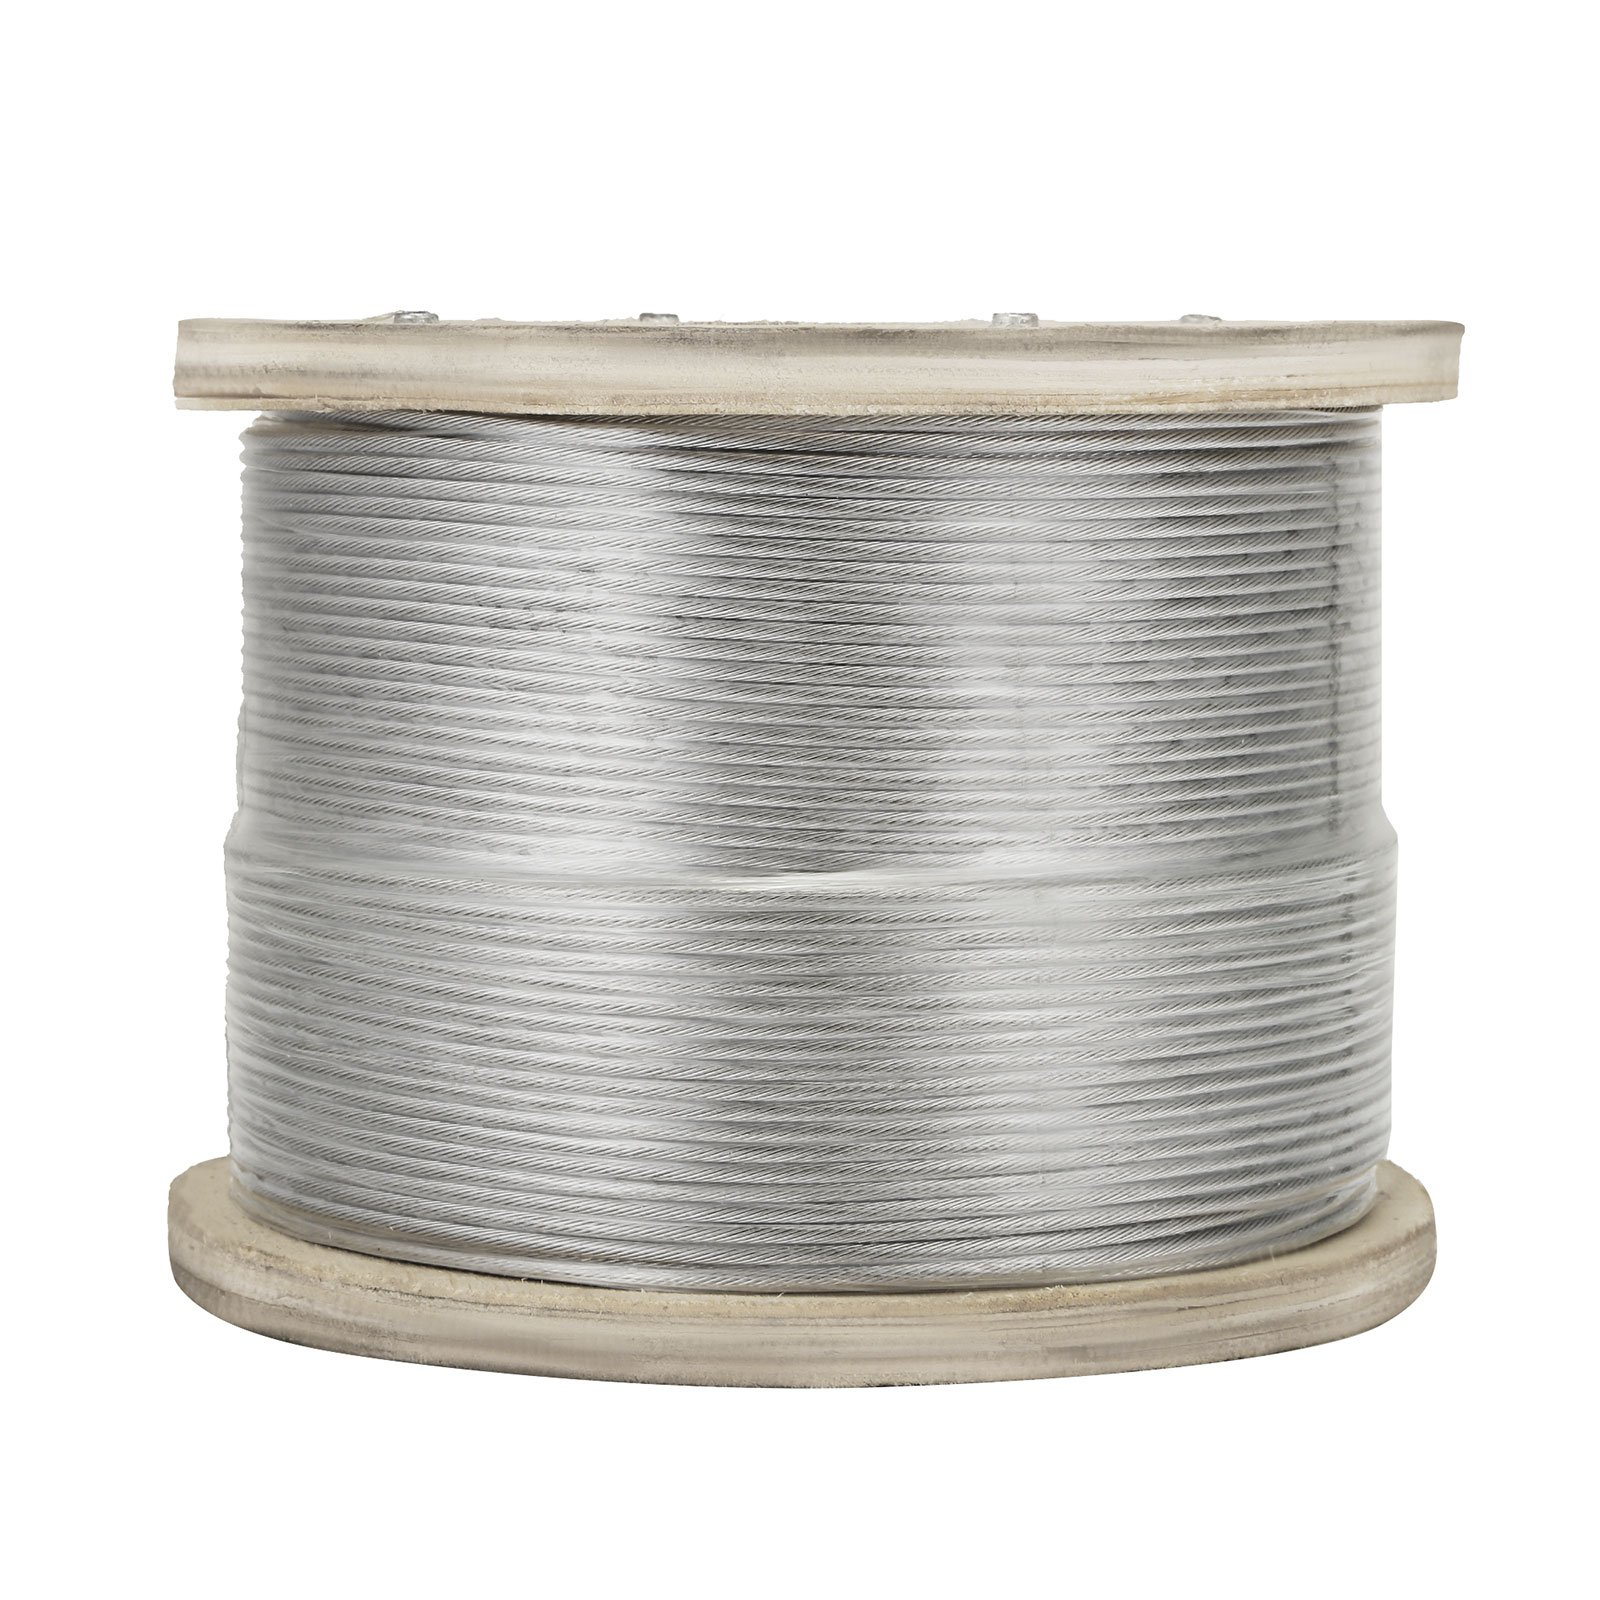 "LOVSHARE 1/8"" 1000FT Wire Rope T316 Stainless Steel Cable Railing 1x19 Strand Core Cable Reel"